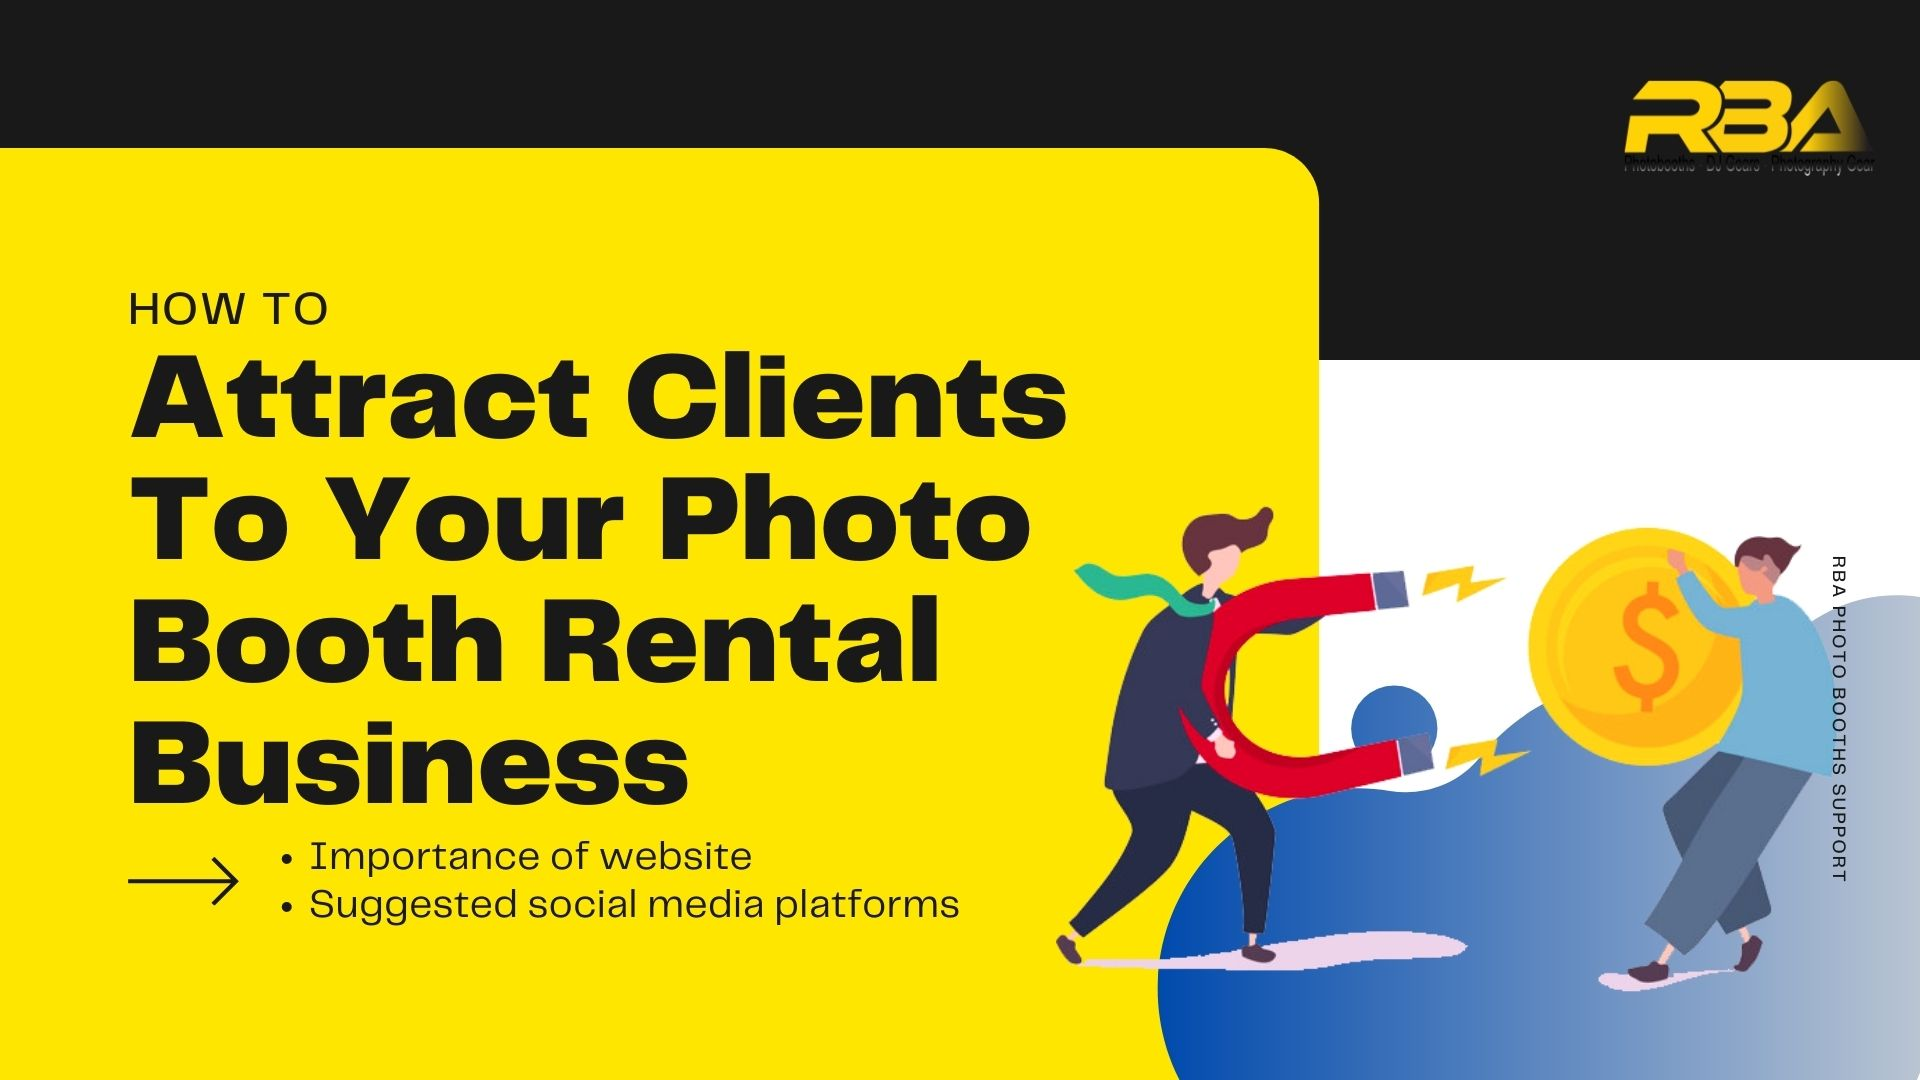 how to attract customers to your photo booth business